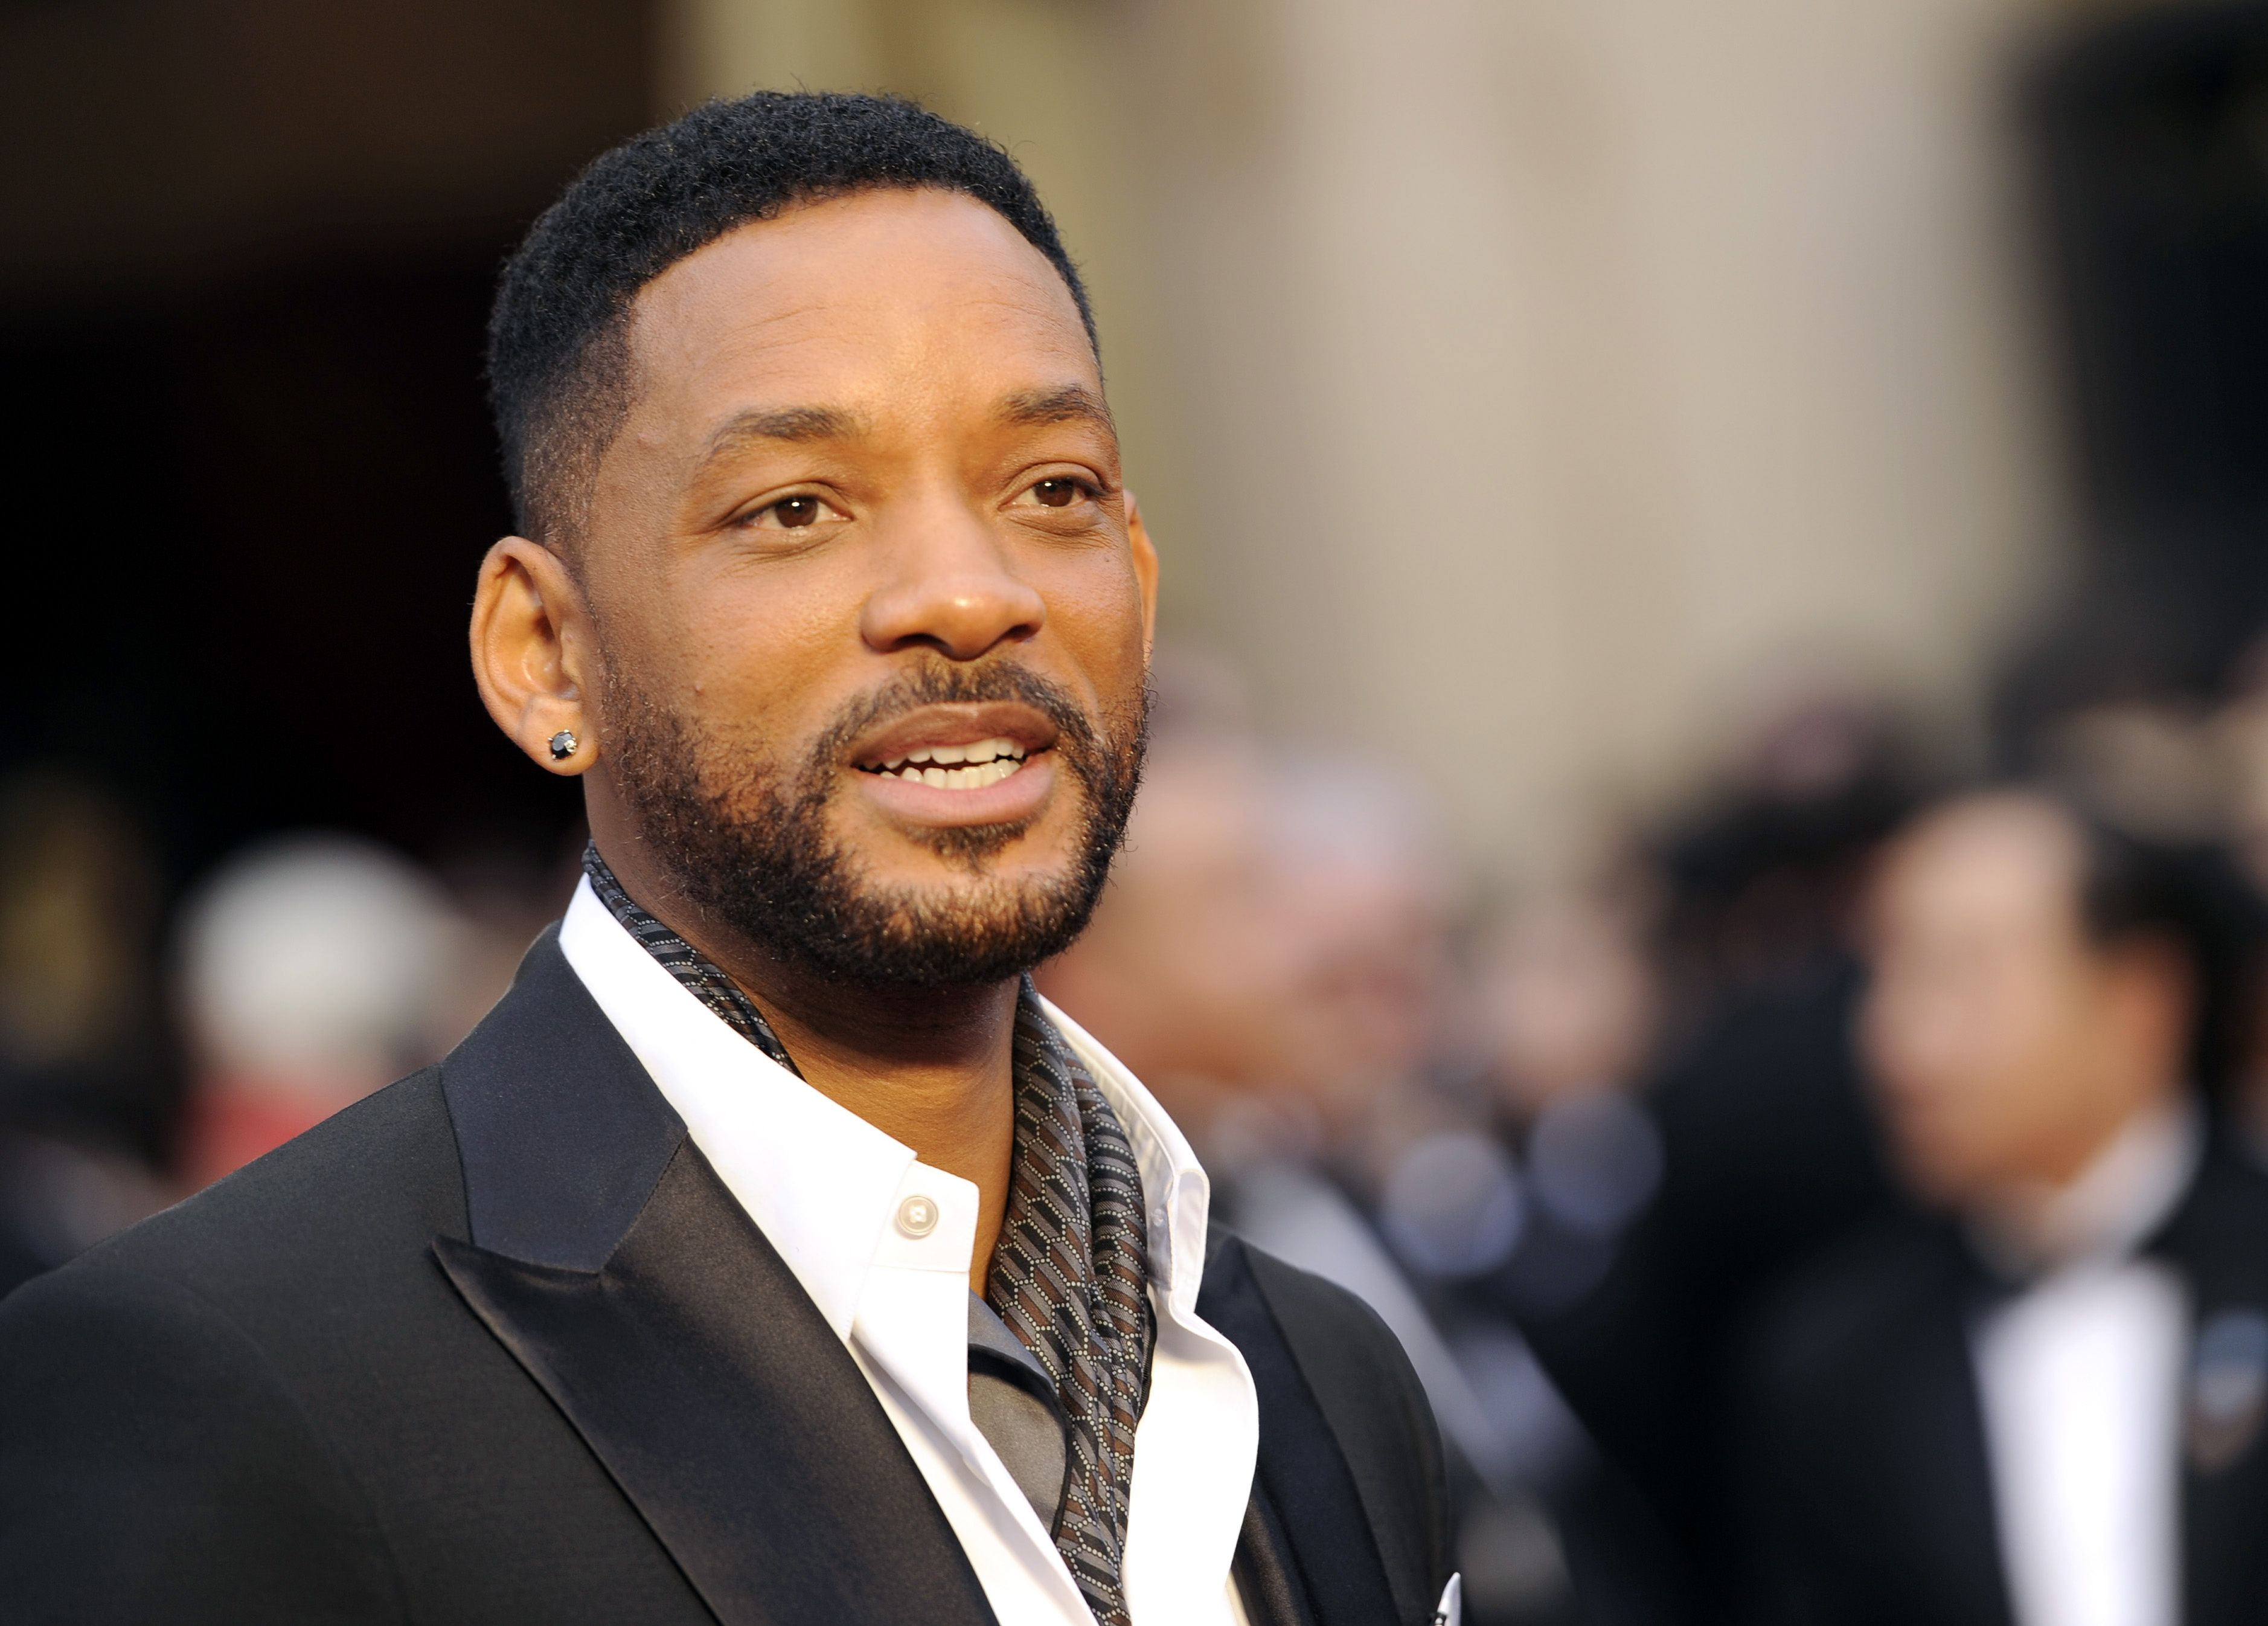 will smith - Buscar con Google